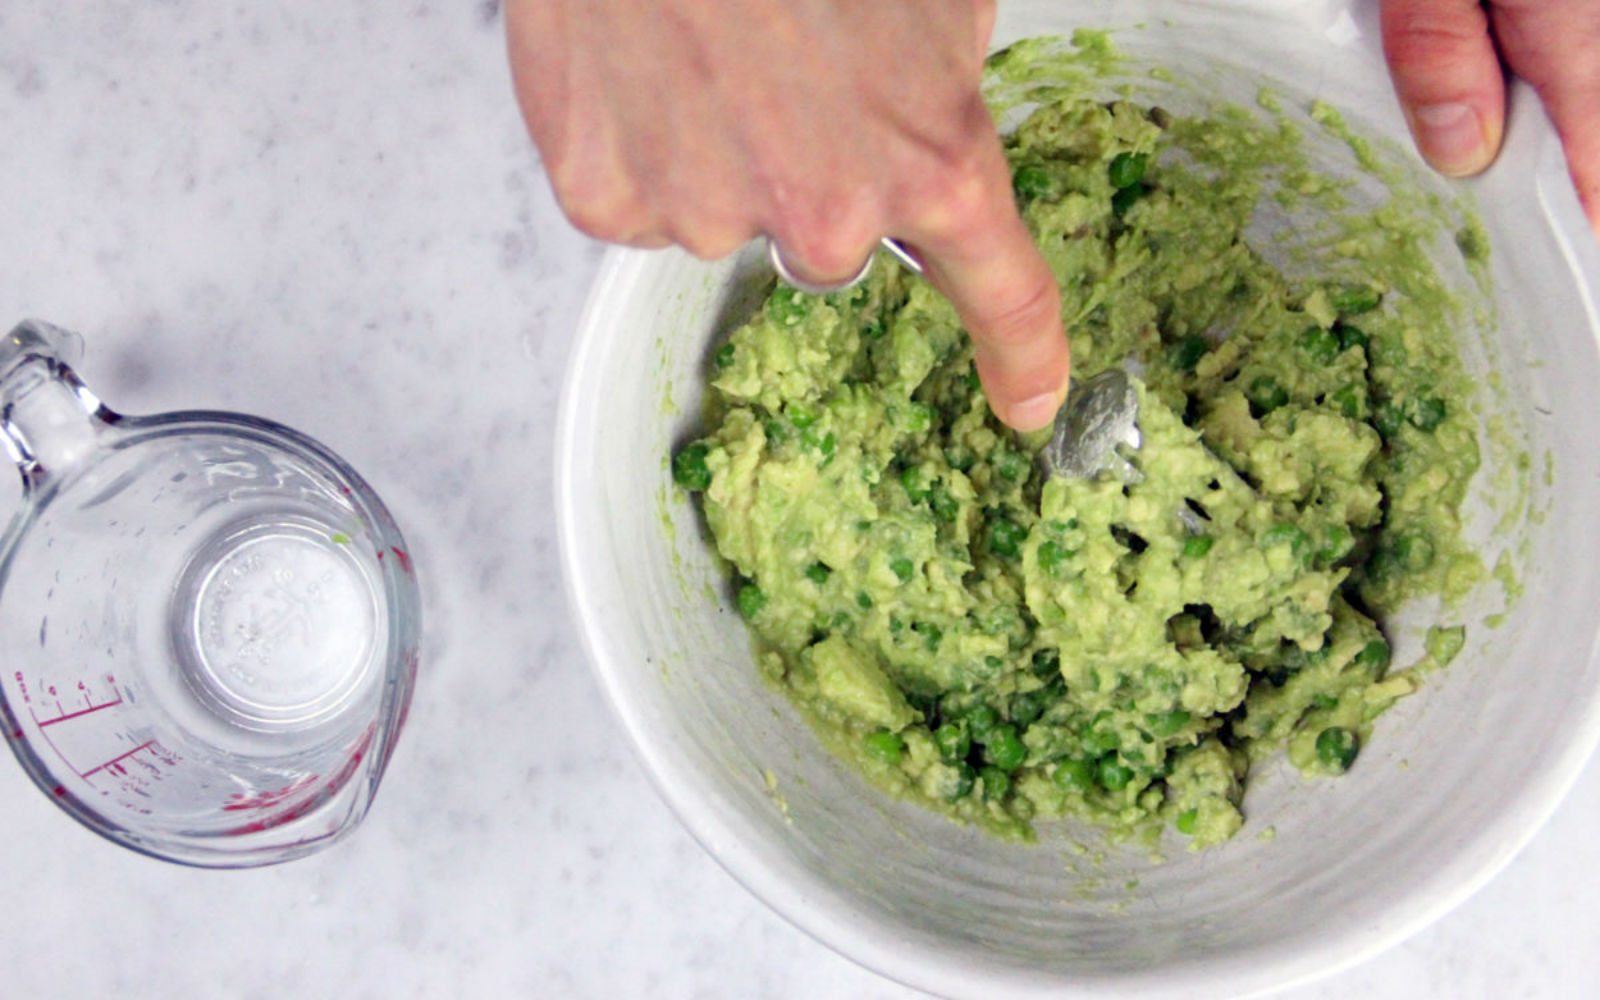 Vegan Easy Protein Guacamole with peas